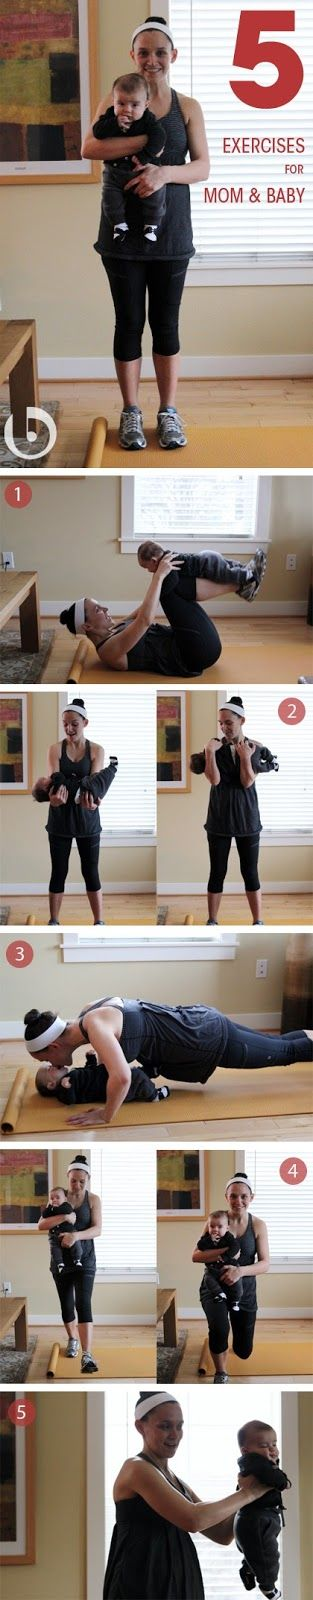 Bellyitch: 5 Workout moves new moms can do with their babies